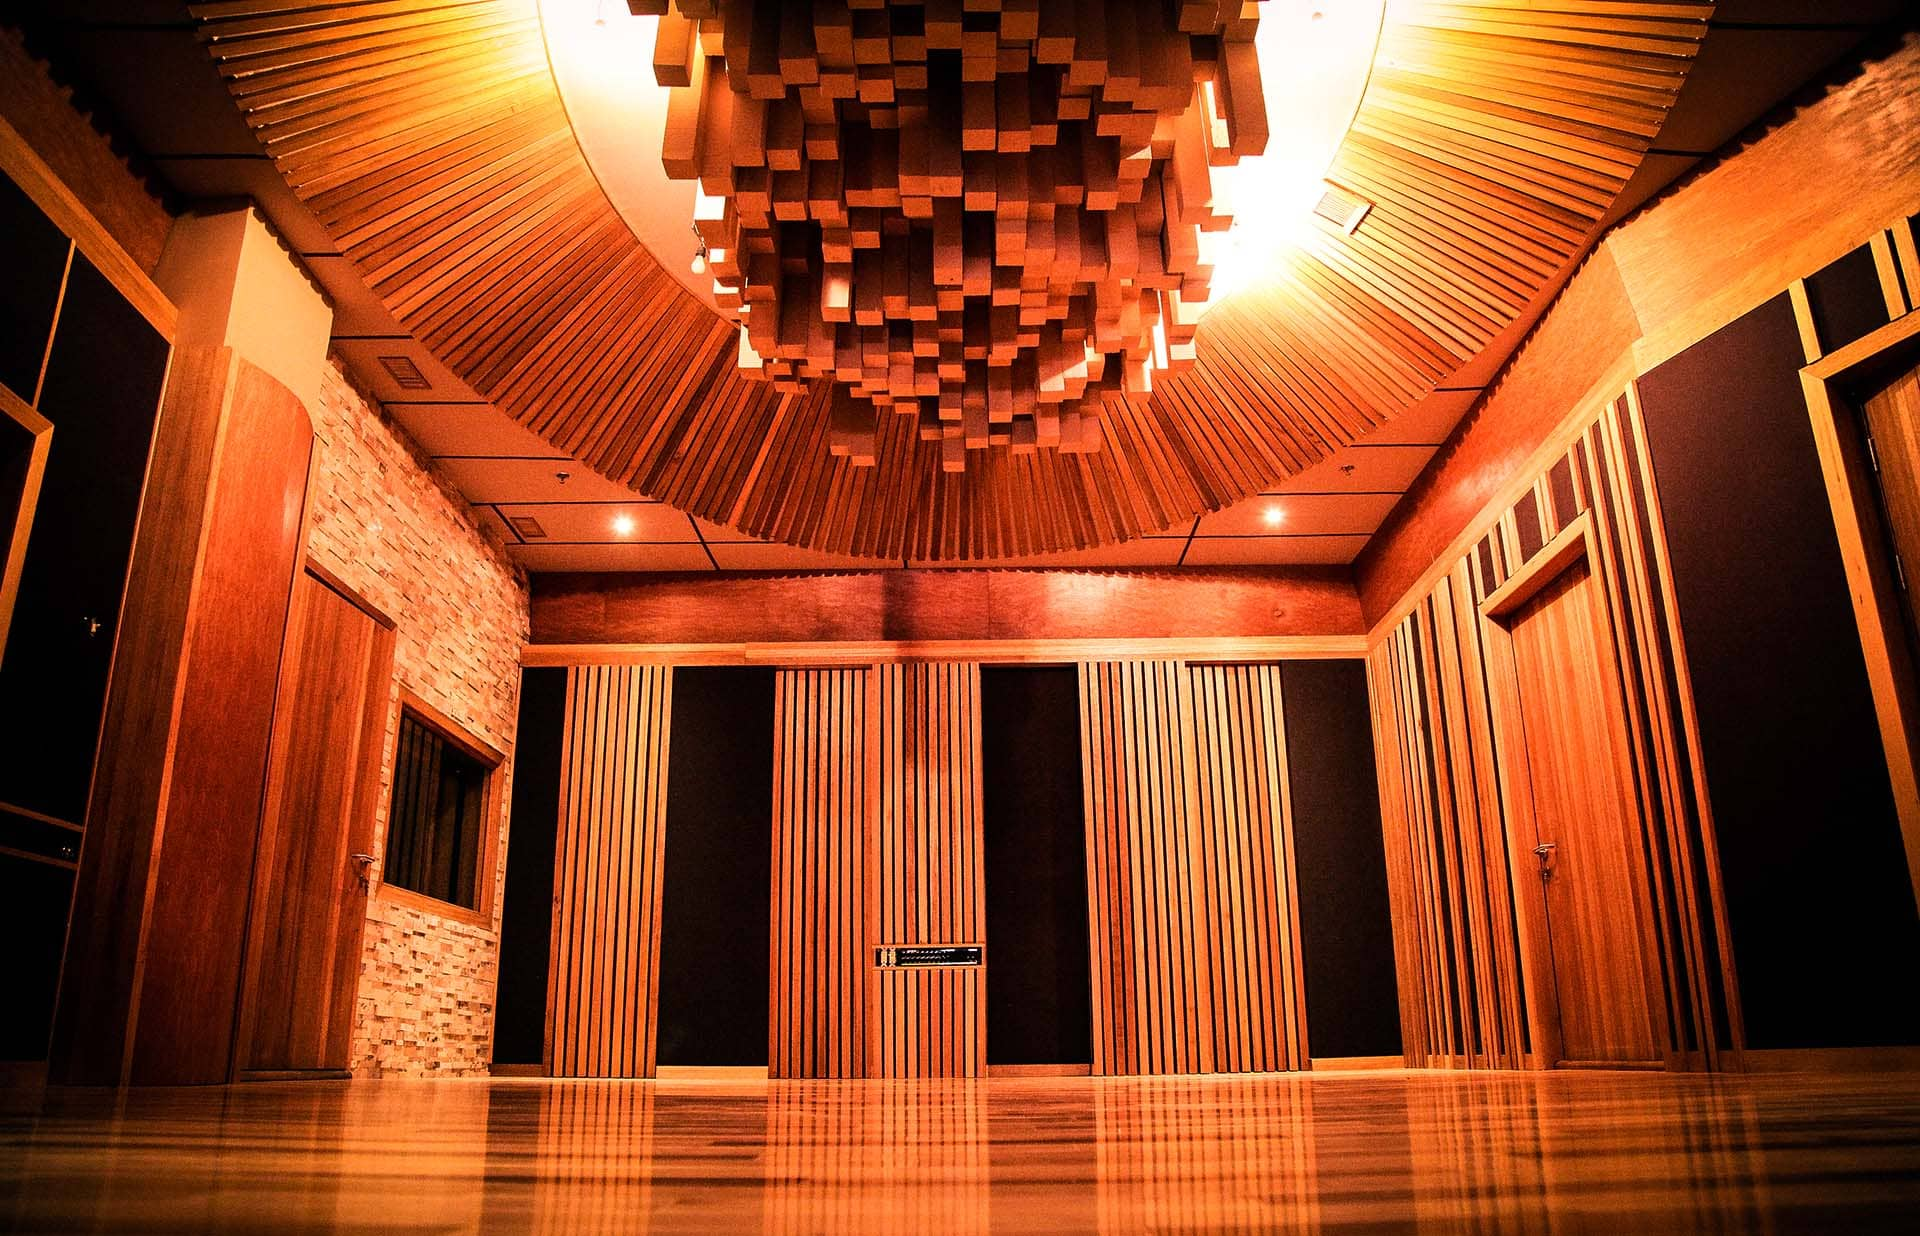 ACOUSTICS IS COUNTER-INTUITIVE, NOT A BLACK ART